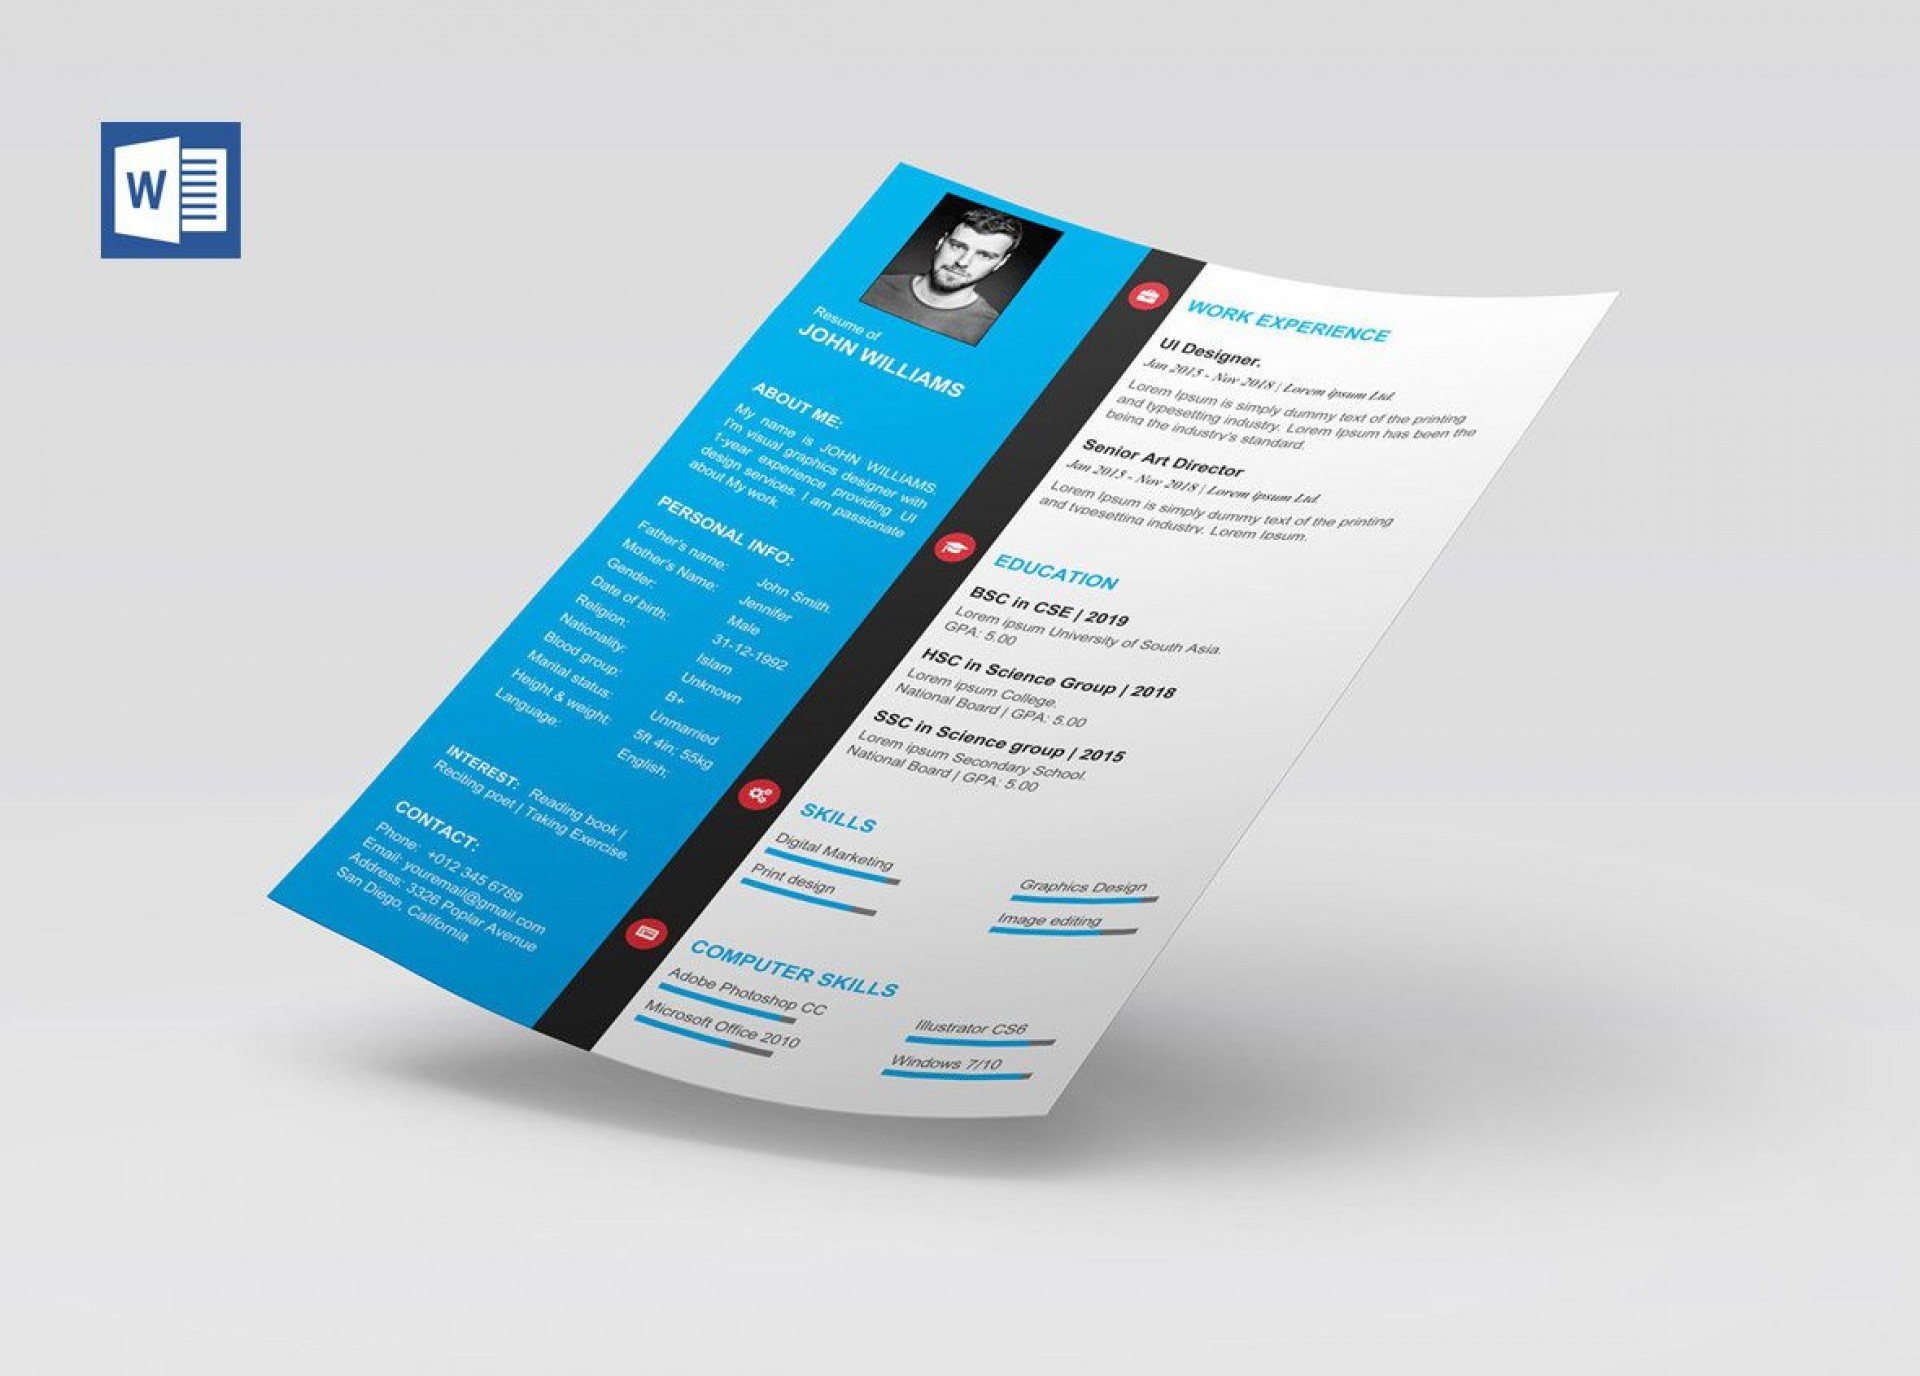 008 Magnificent M Word Template Free Download High Definition  Microsoft Office Invoice Letterhead 2003 Resume1920